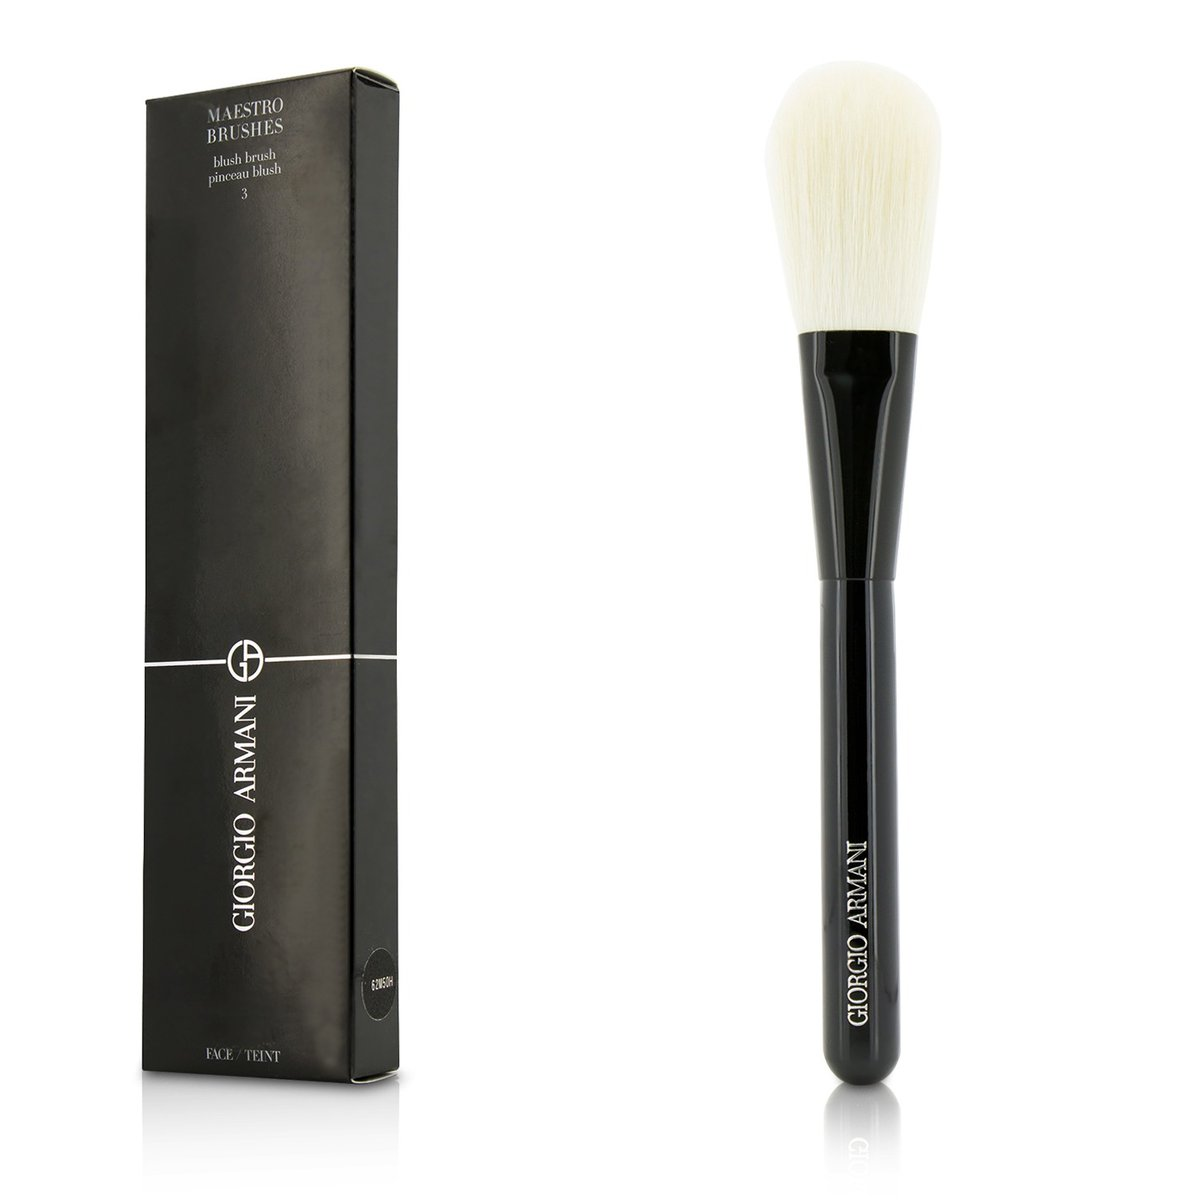 Maestro Blush Brush 3  -[Parallel Import Product]